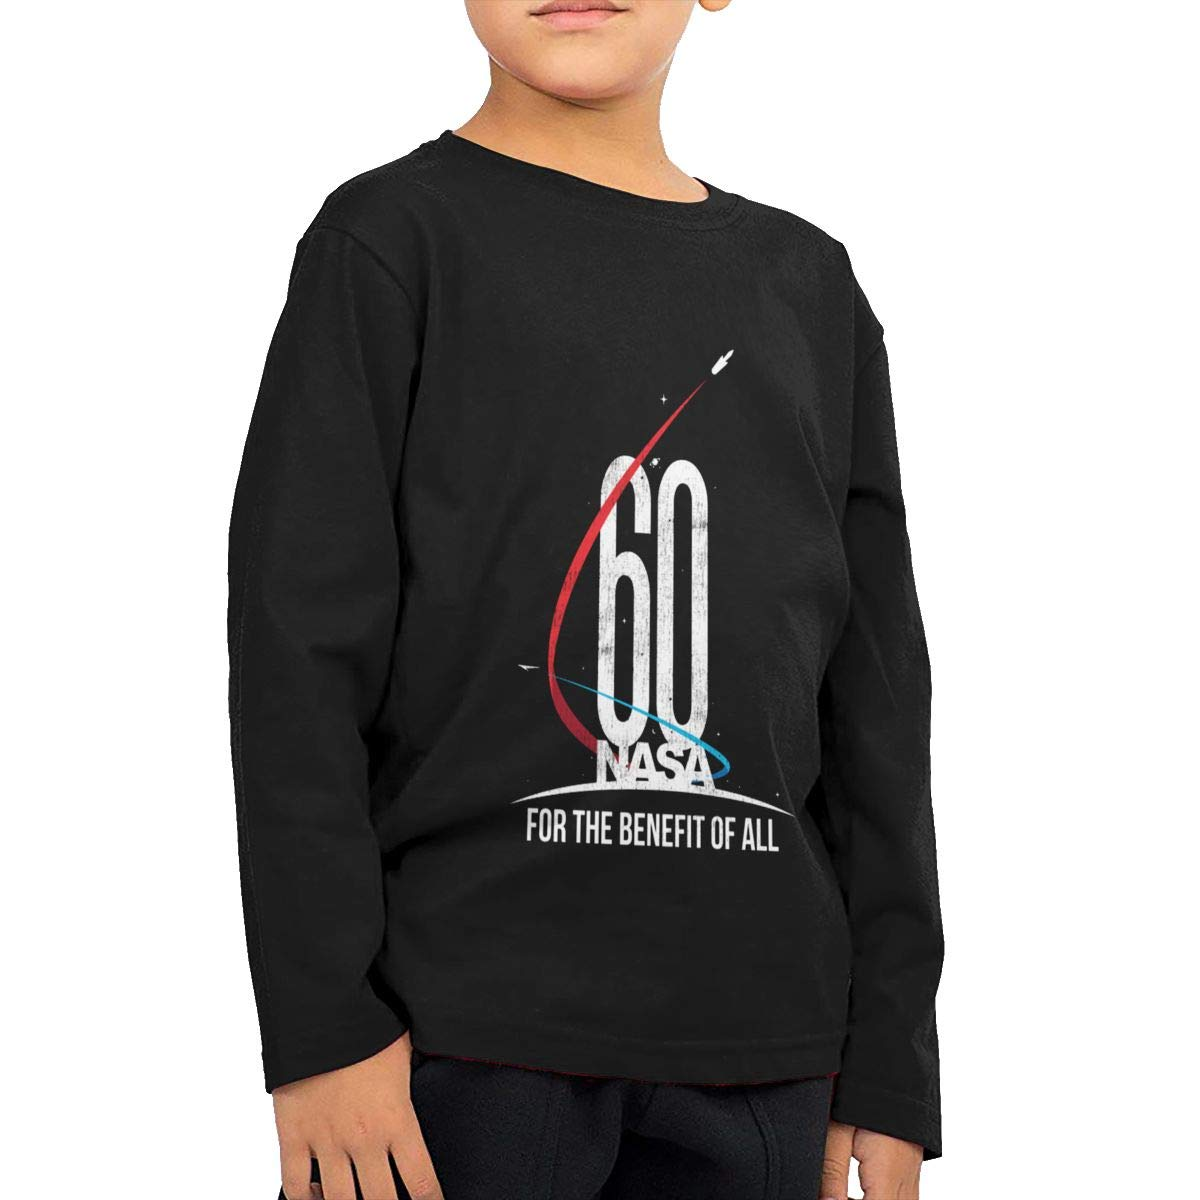 NASA 60th Anniversary for The Benefit of All Childrens Long Sleeve T-Shirt Boys Cotton Tee Tops